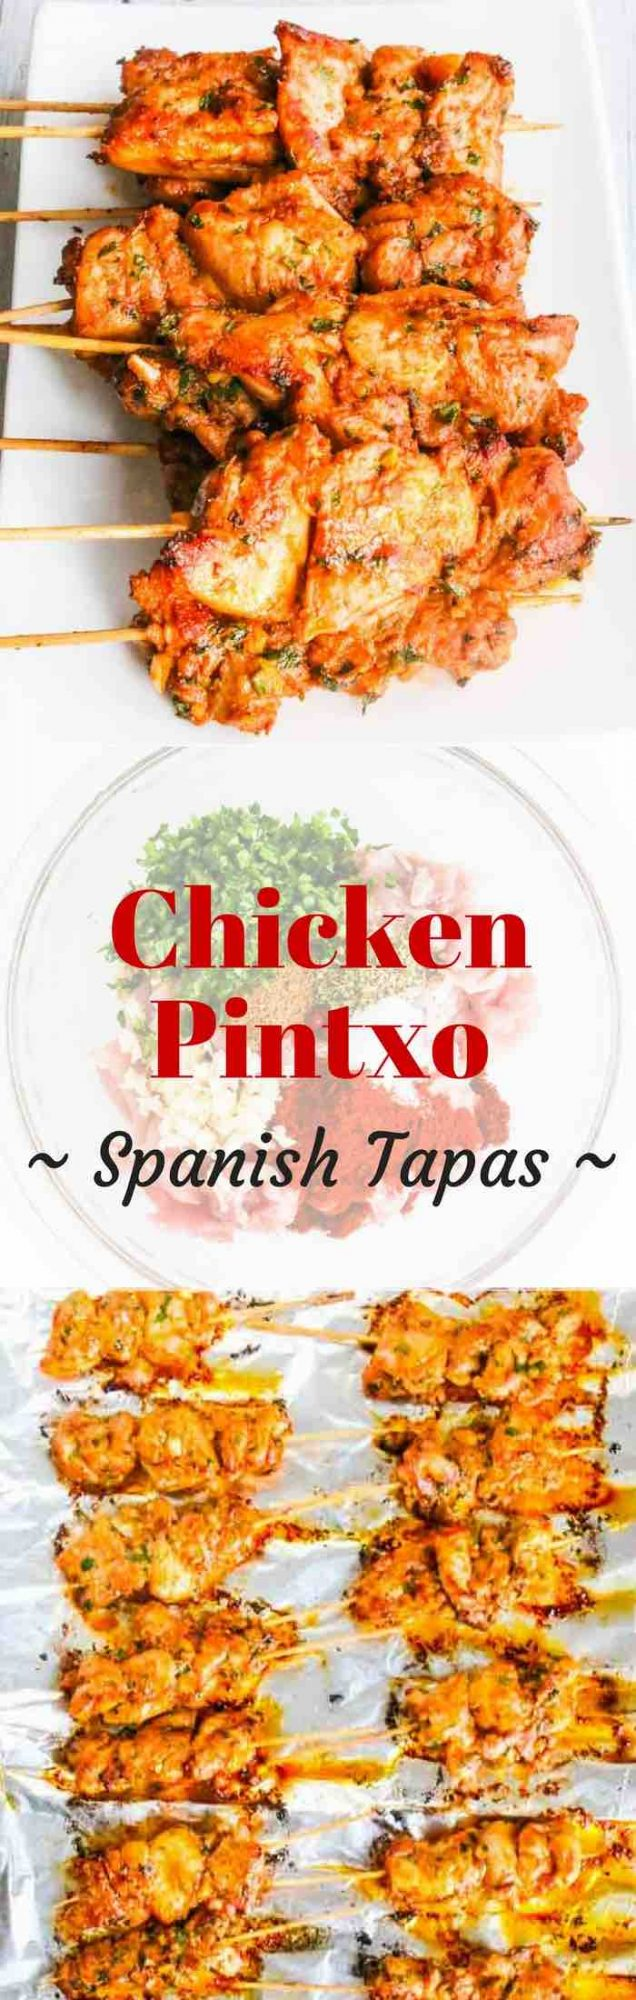 Chicken Pintxo - Spanish tapas - the perfect party food on a skewer